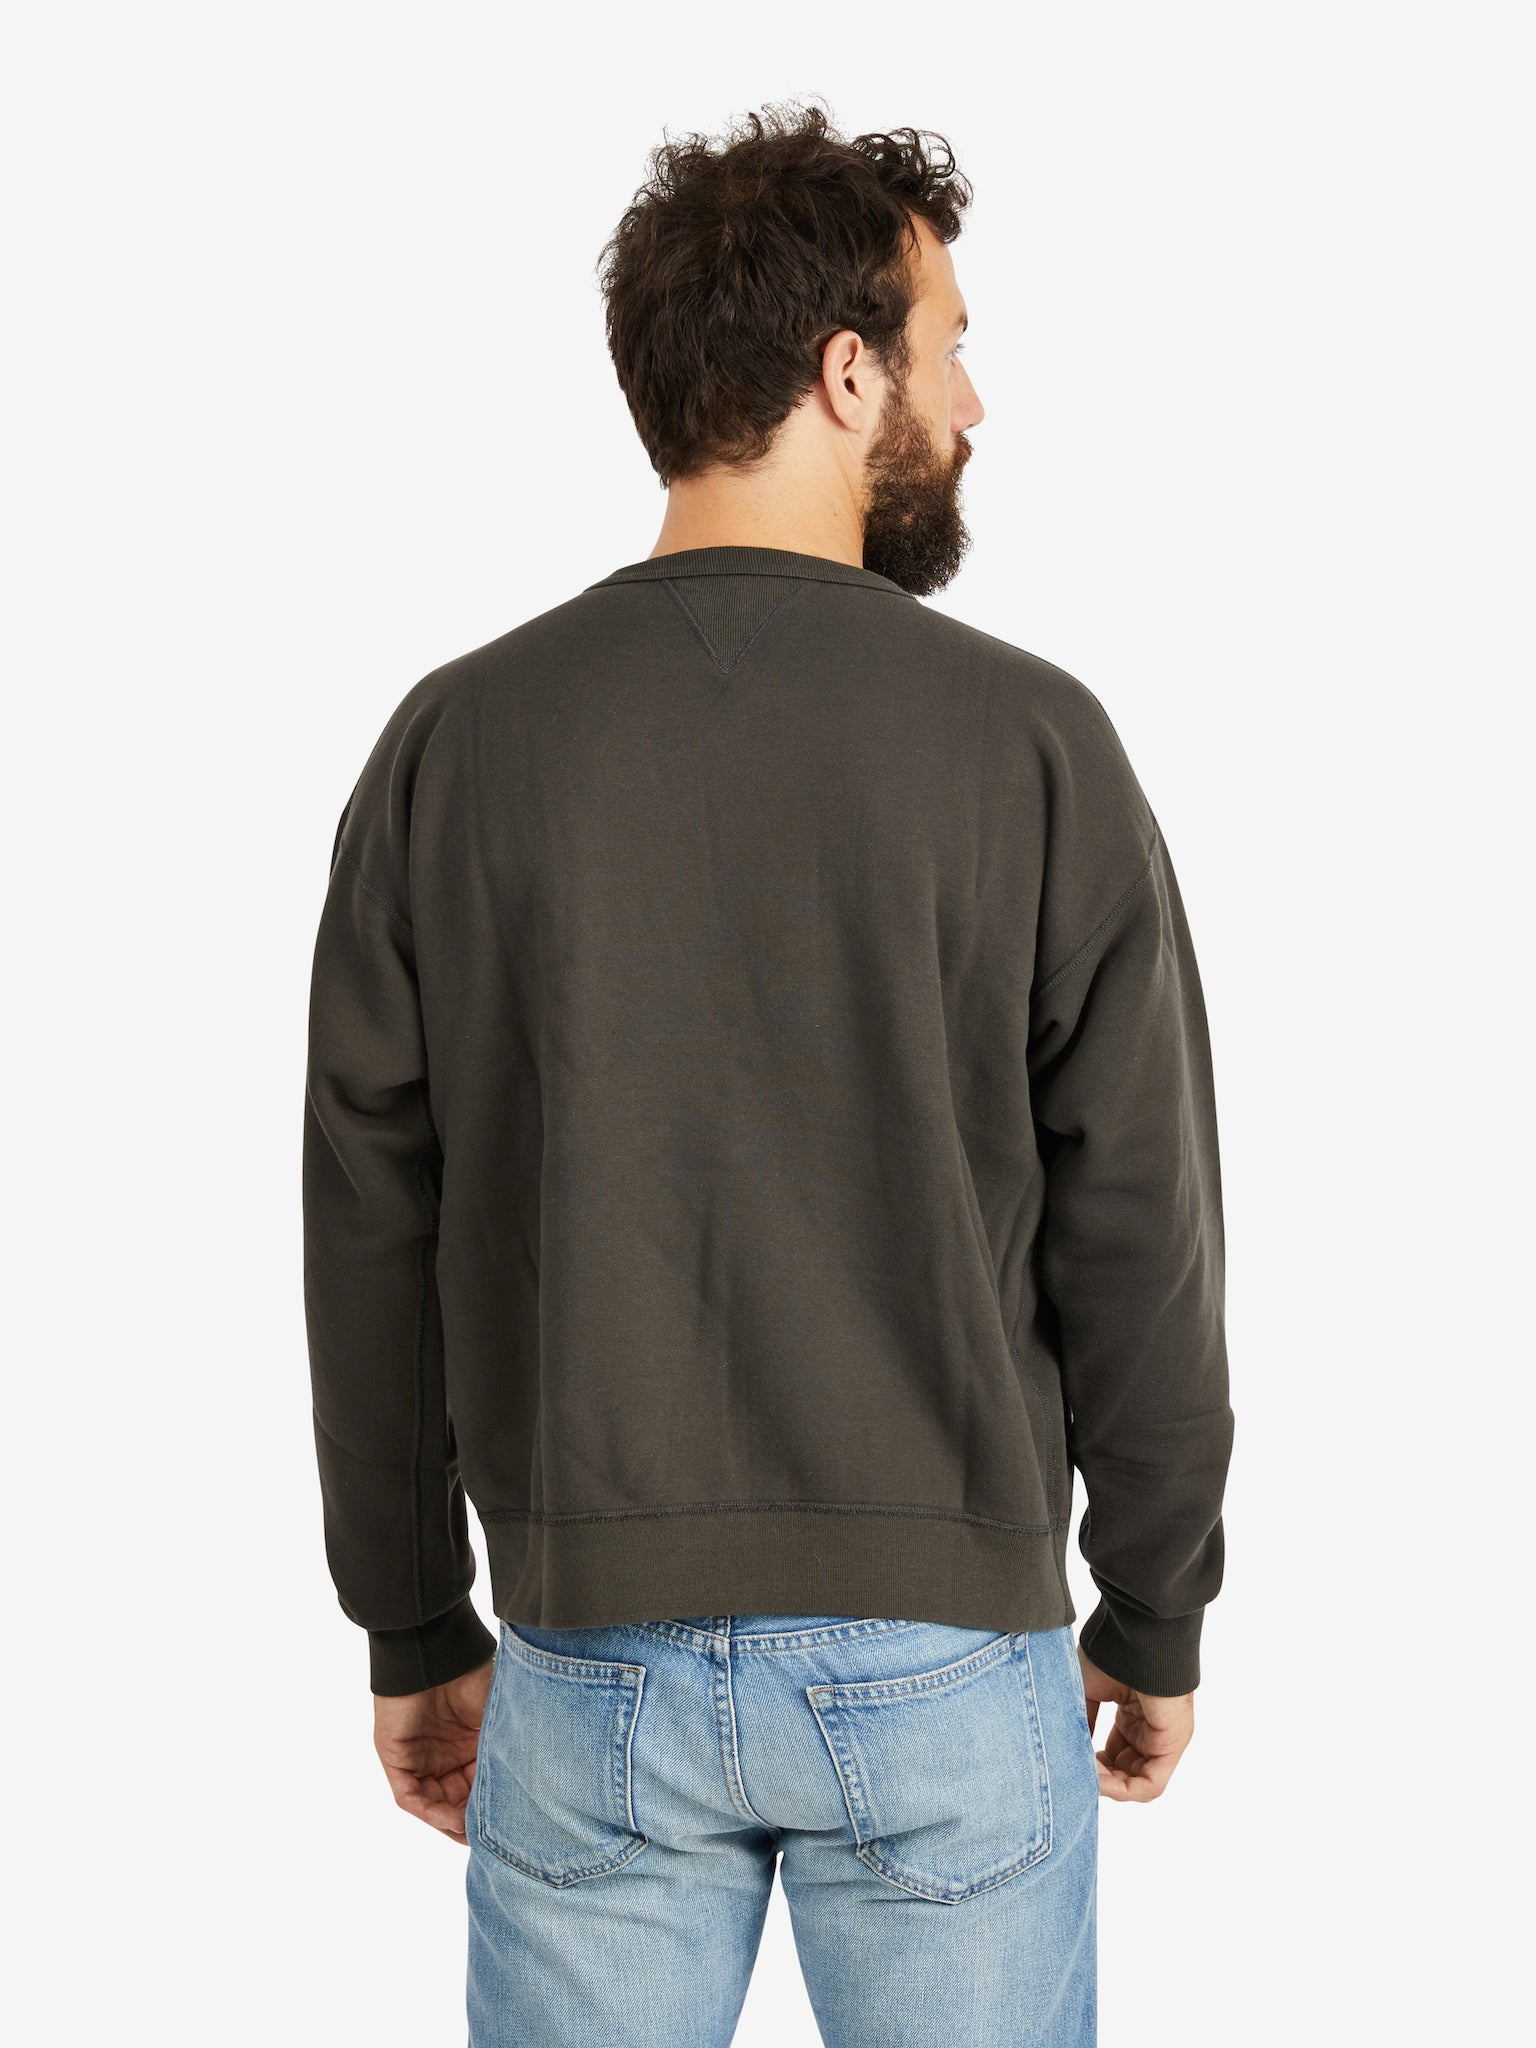 Chimala Sheep Fleece Crew Neck Reversible Sweatshirt